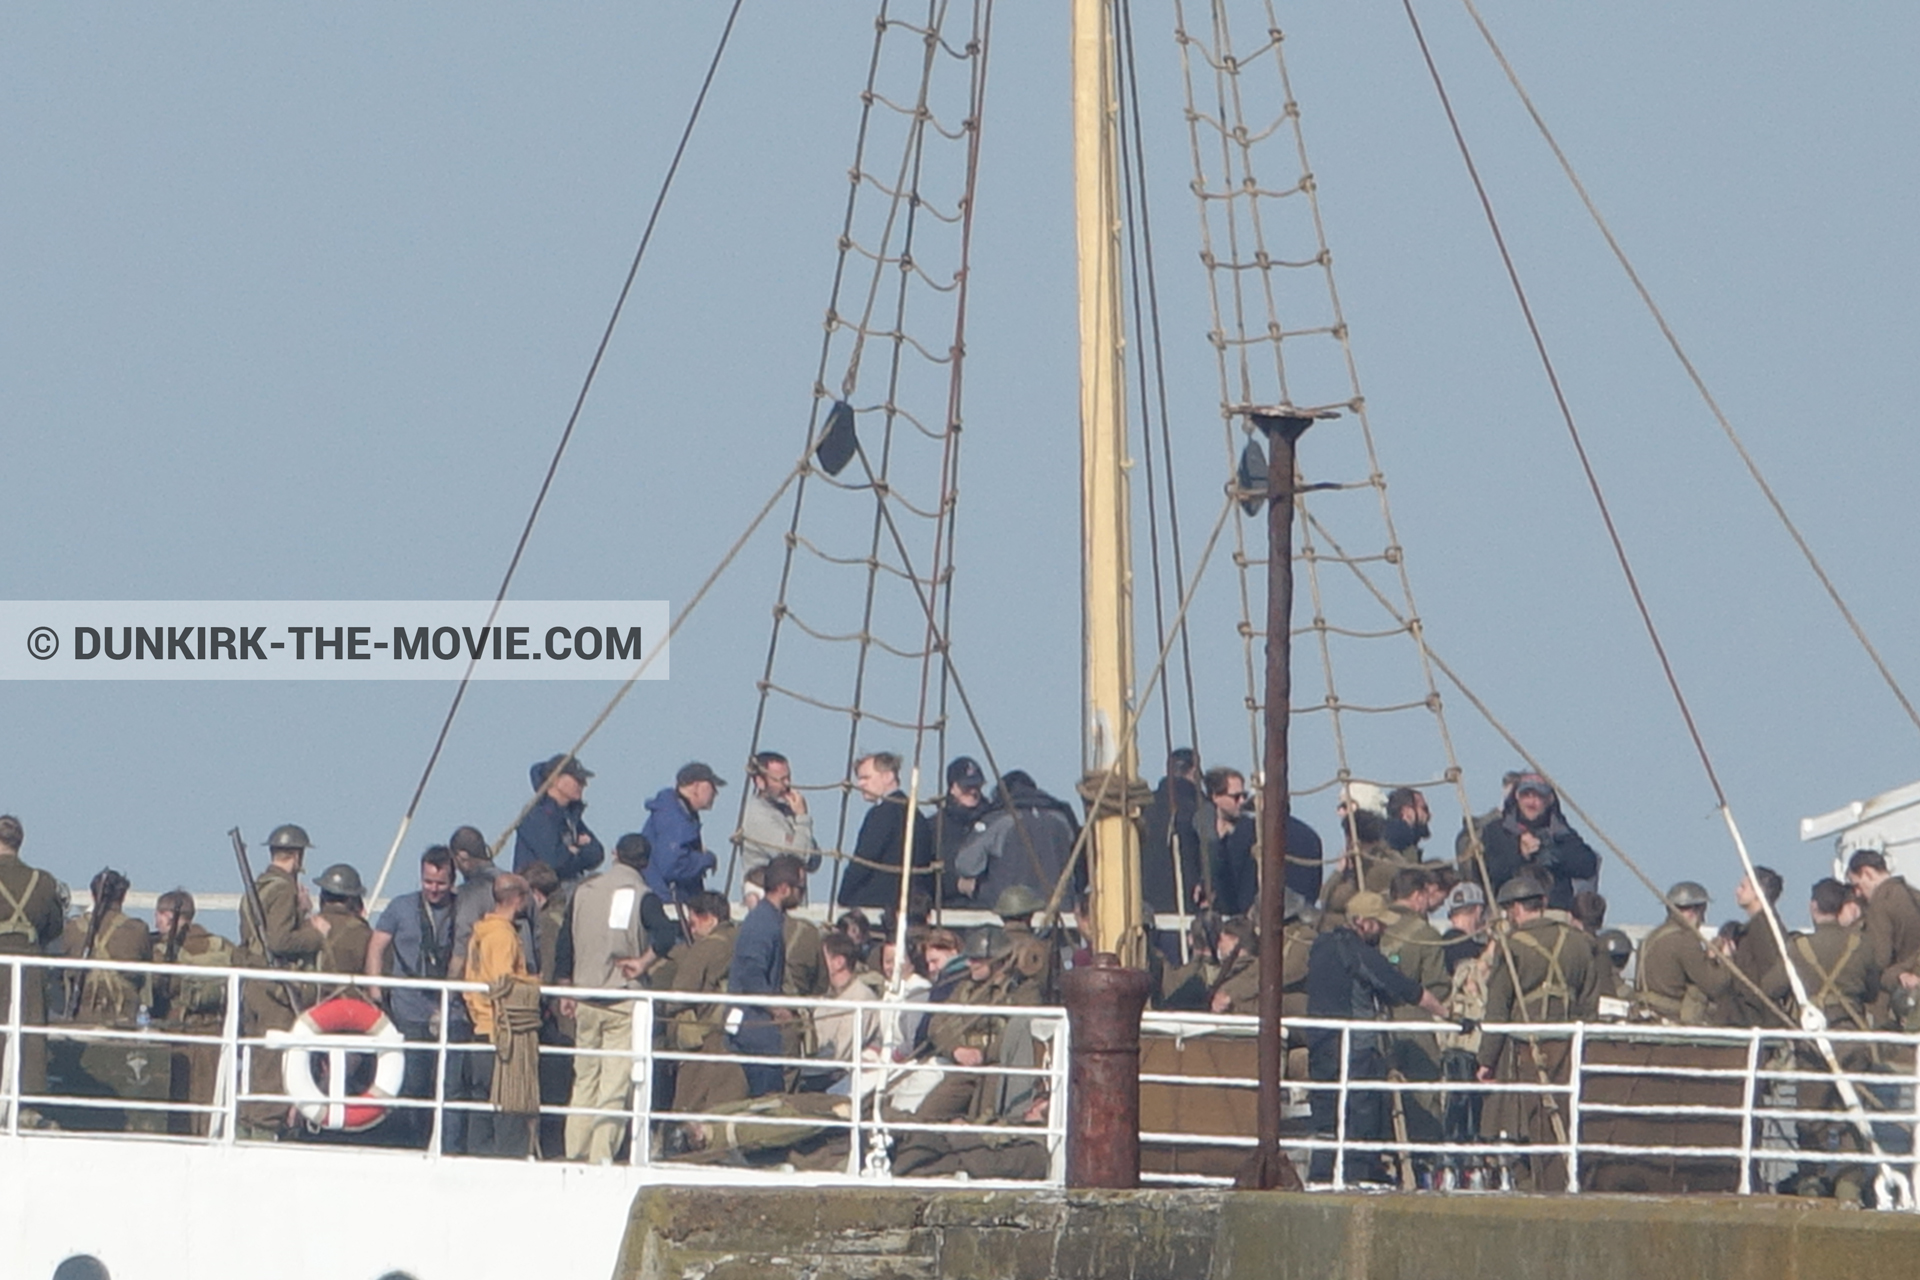 Picture with supernumeraries, Hoyte van Hoytema, EST pier, Christopher Nolan, technical team, M/S Rogaland,  from behind the scene of the Dunkirk movie by Nolan